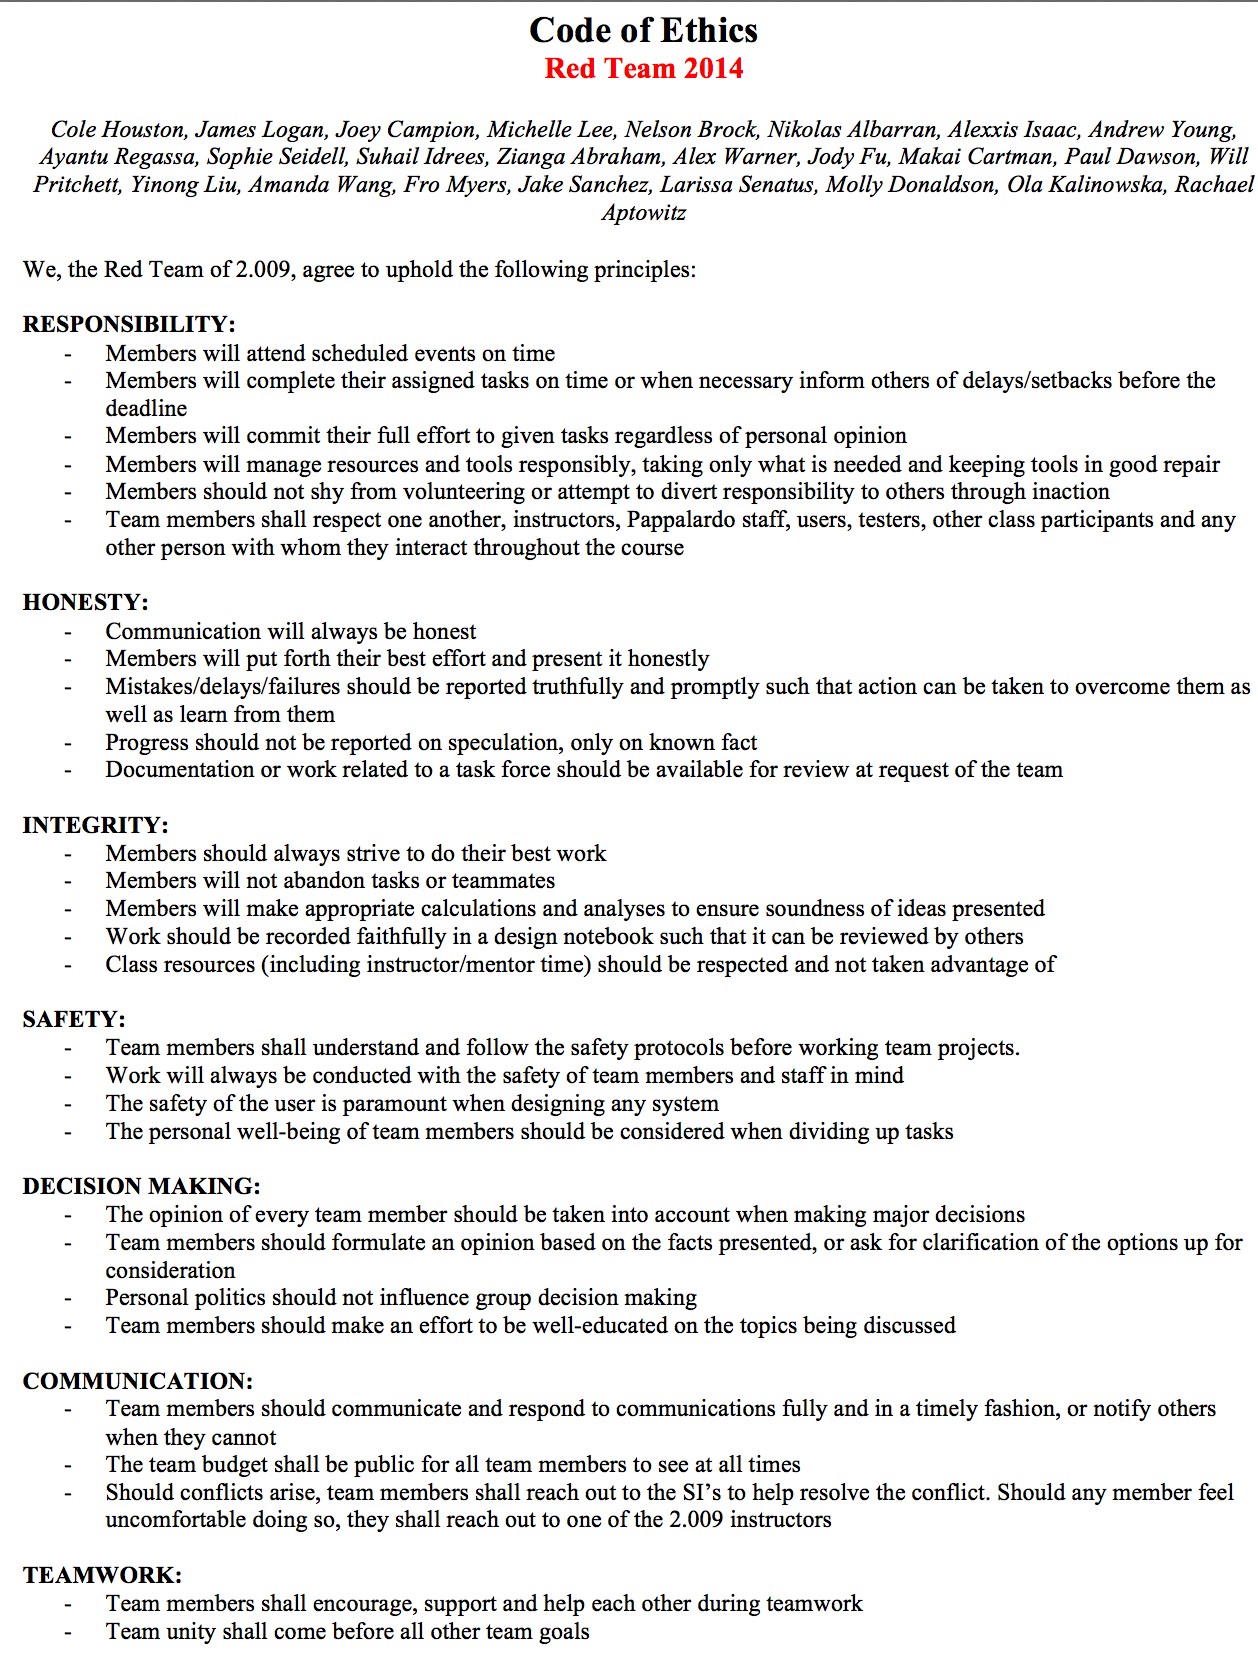 Resume Adverbs Code Of Ethics Examples Images Resume Cover Letter Examples